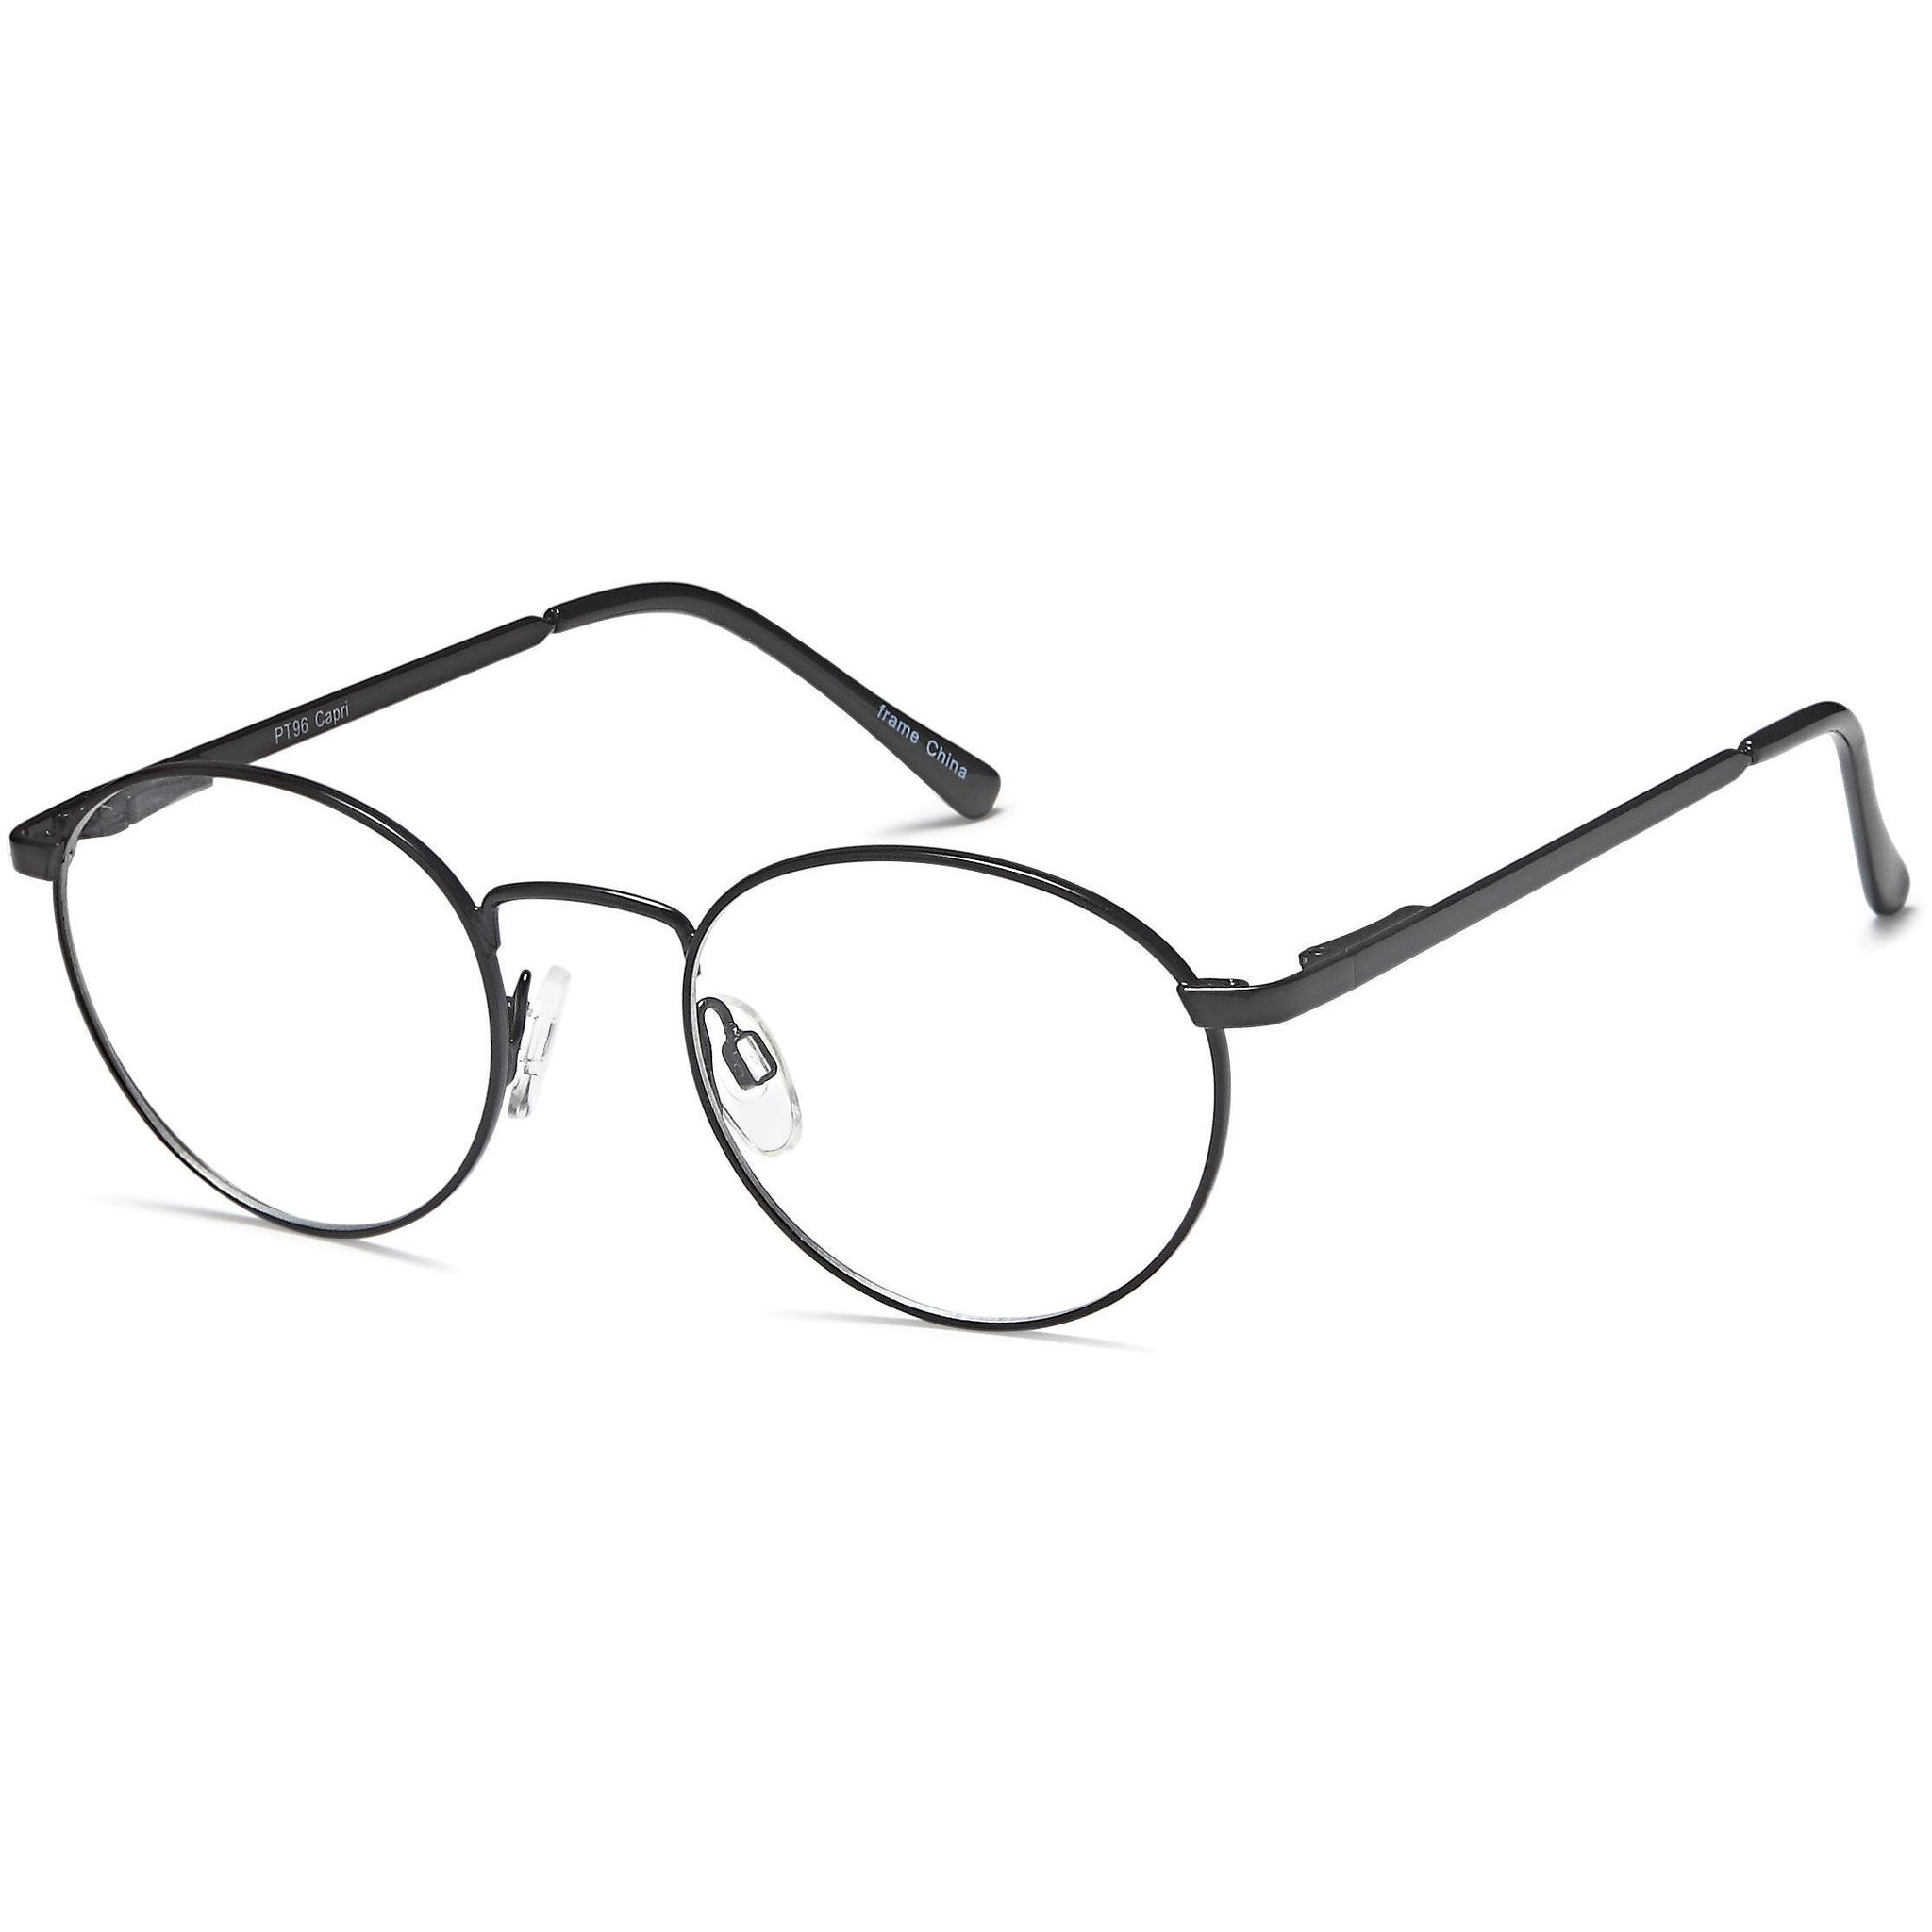 Harry by The Square Mile Round Juniors Optical Glasses - timetoshade